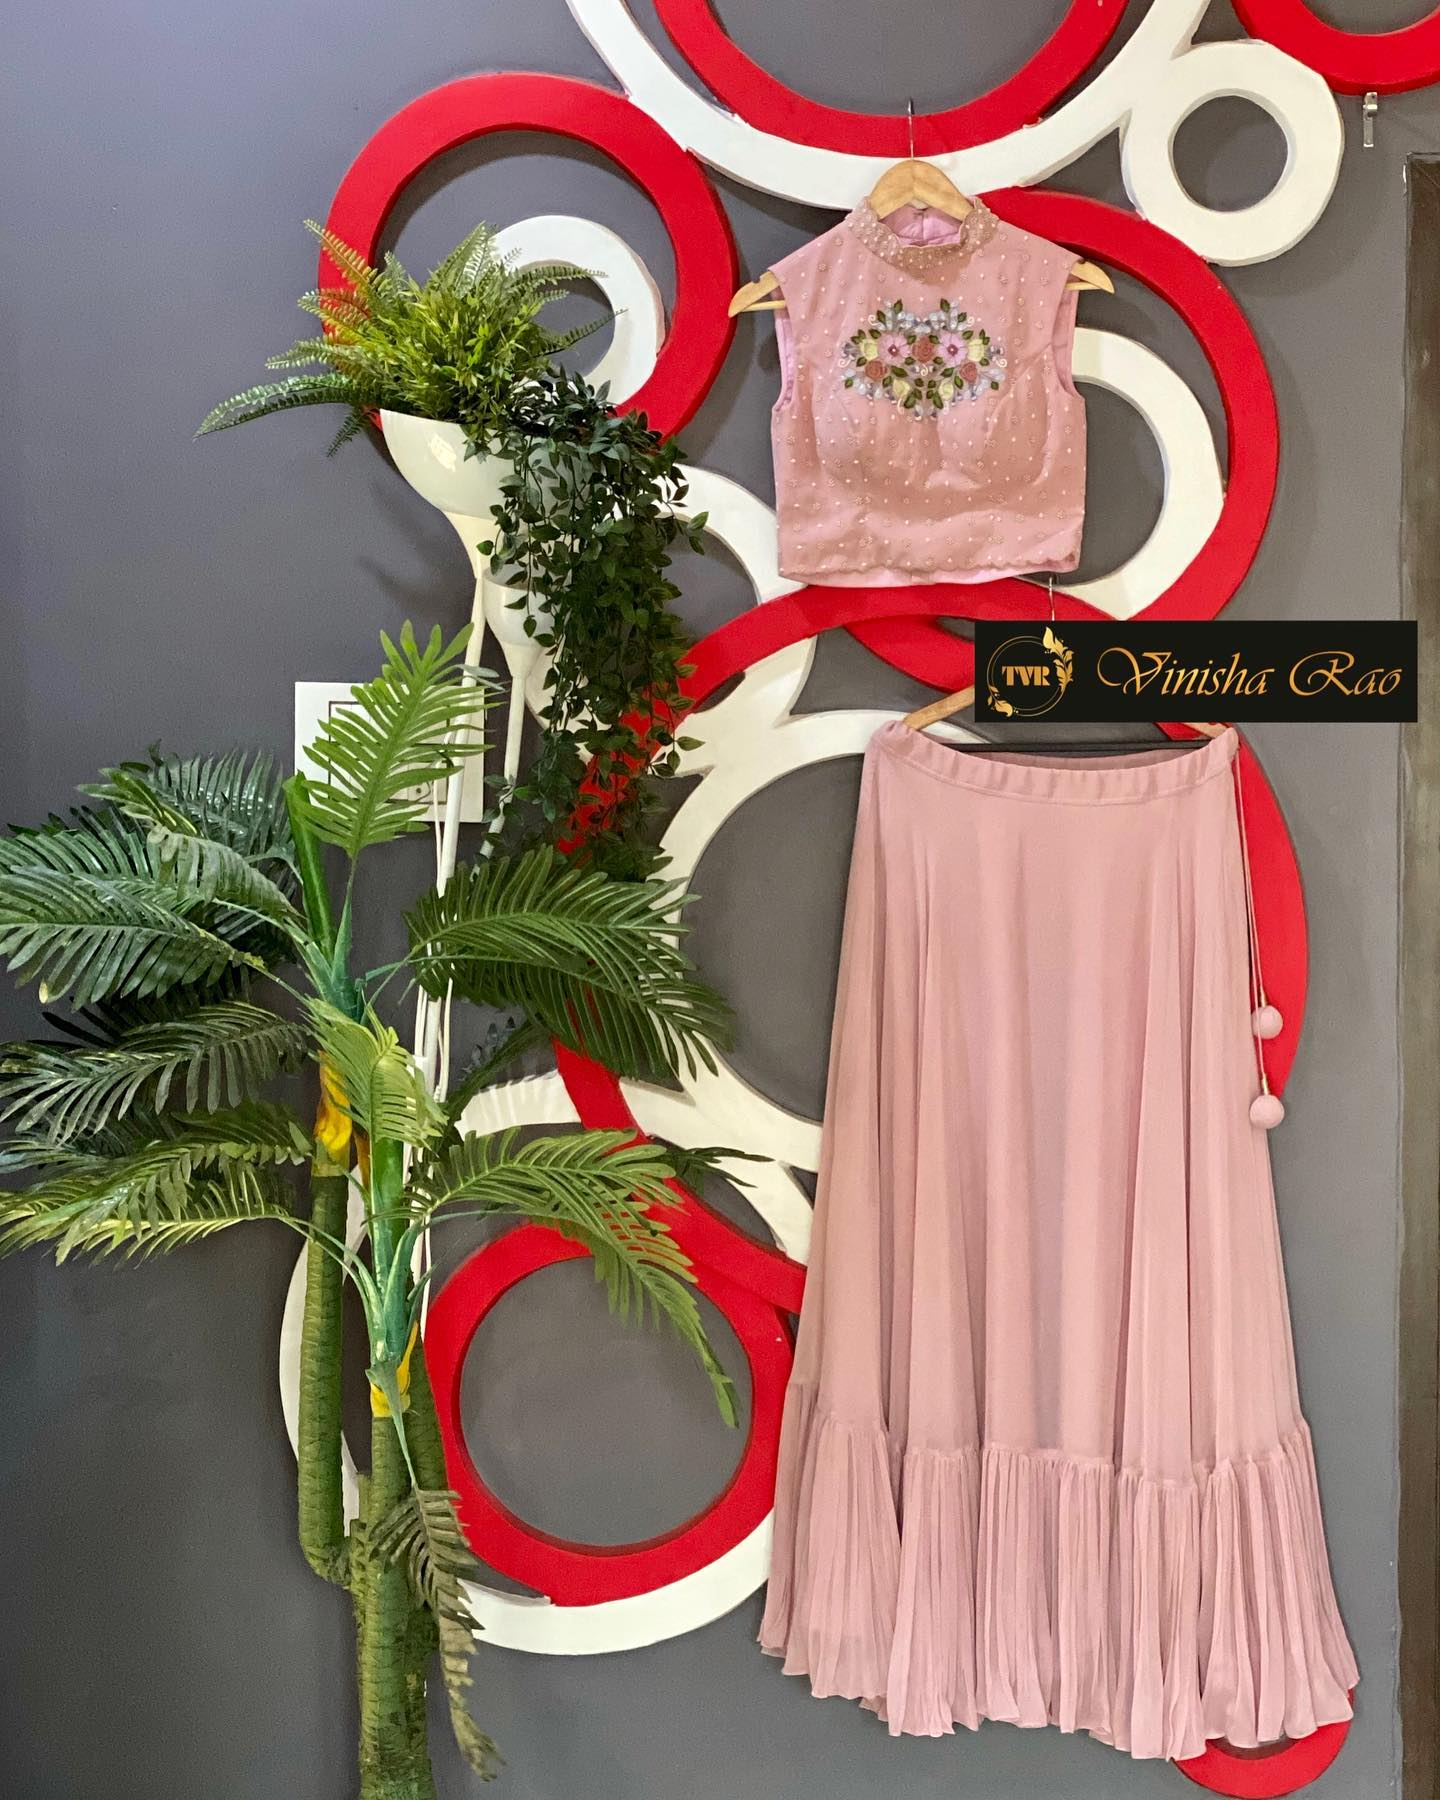 Blush pink georgette lehenga teamed with georgette blouse with hand embroidery work and having heavy pleats at the bottom of the lehenga from the house of Vinisha rao designer studio !! Suitable for all kind of occasions !!